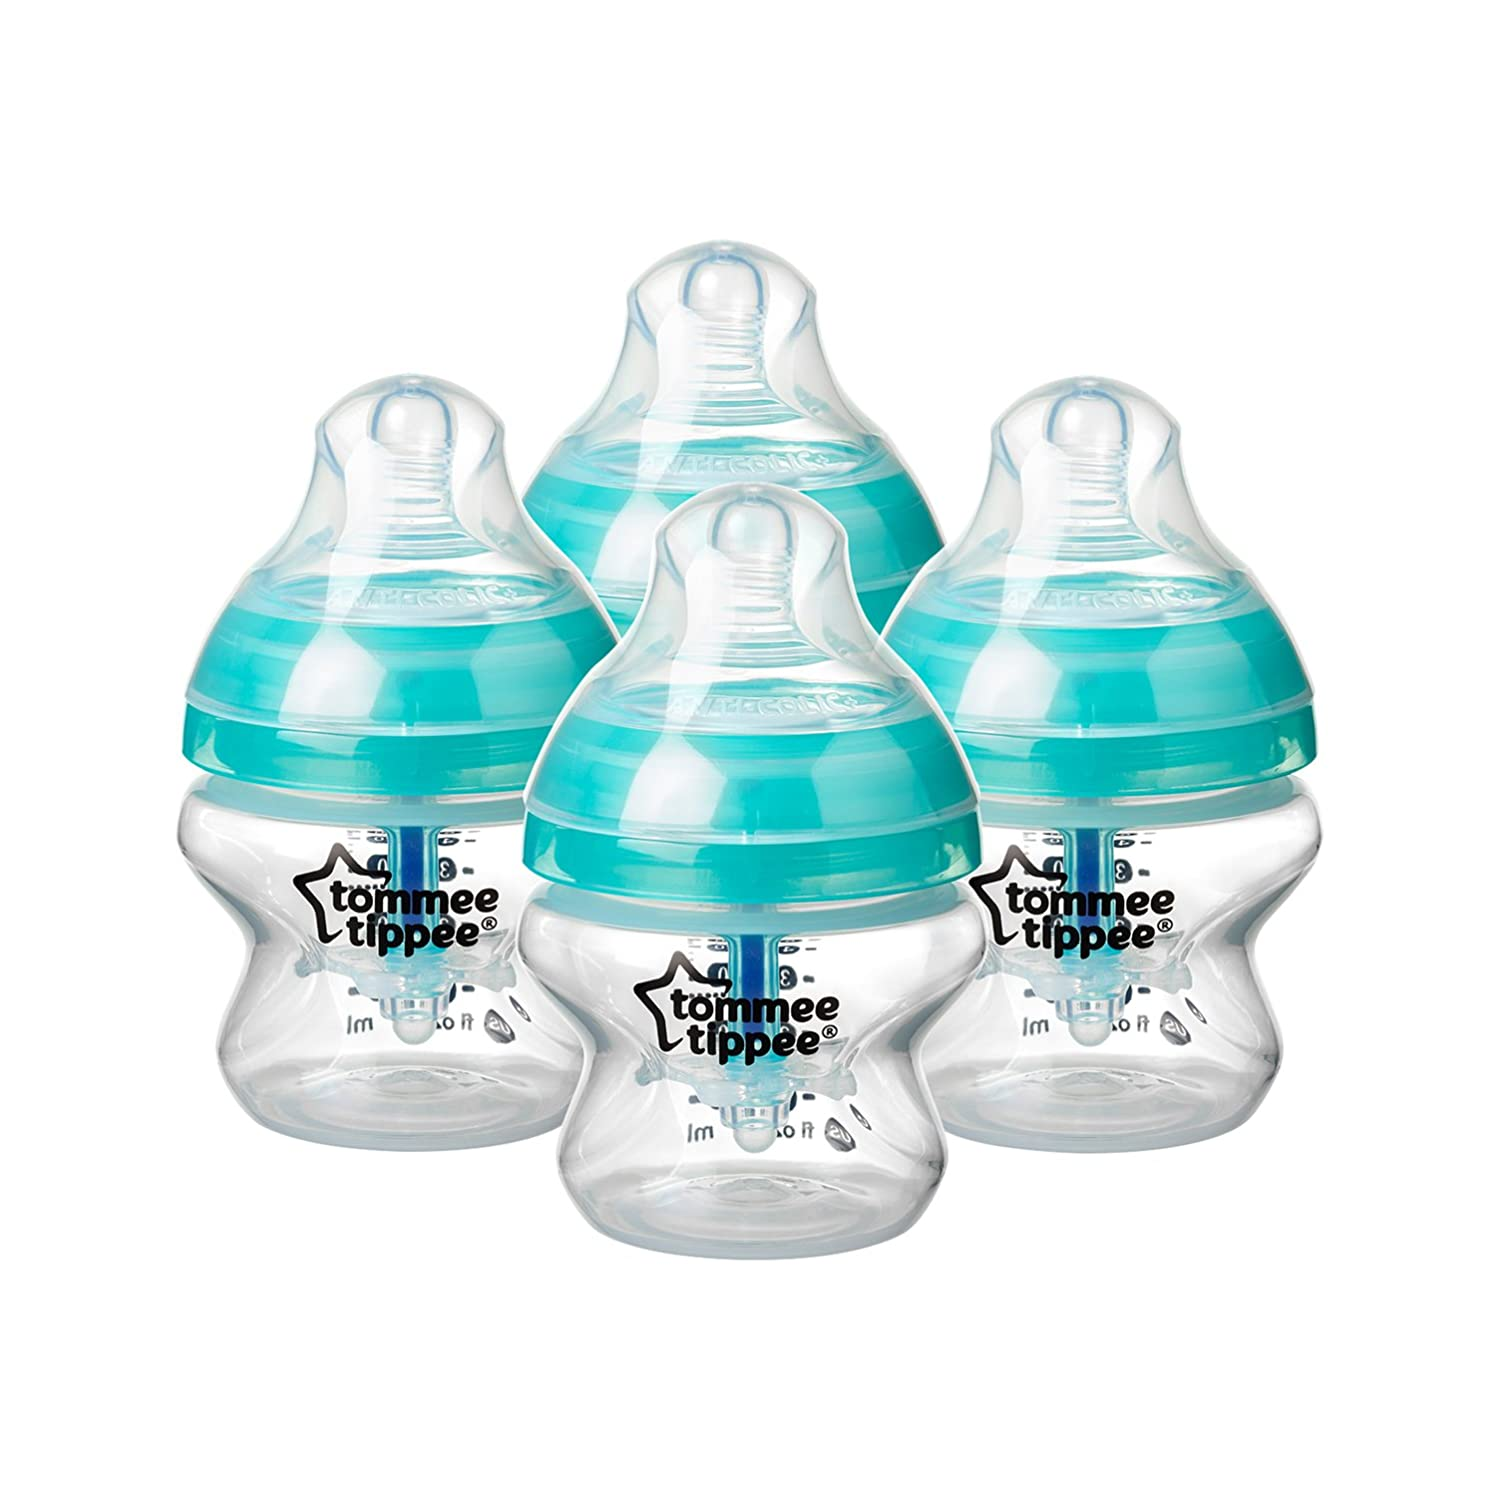 Tommee Tippee Advanced Anti-Colic Baby Bottle, Slow Flow Breast-Like Nipple, Heat-Sensing Technology, BPA-Free - 5 Ounce, 4 Count